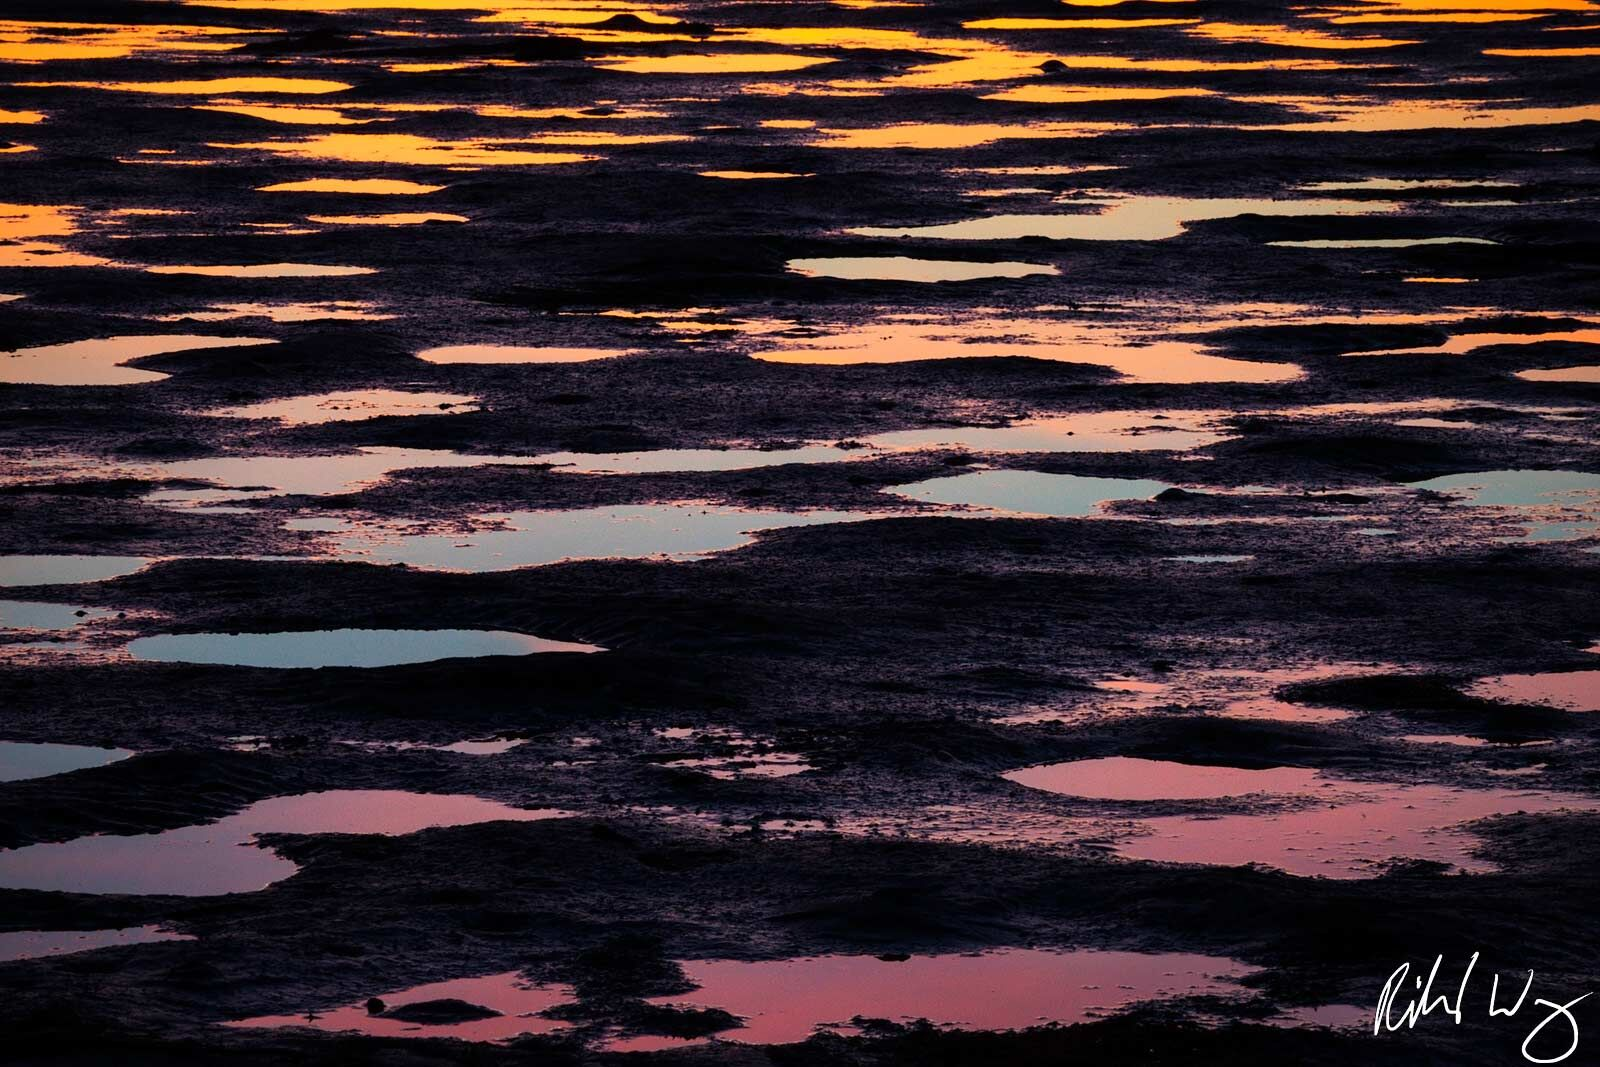 abstract, alameda, beaches, dusk, landscape, low tide, mud, nature, northern california, patterns, reflections, robert crown memorial state beach, san francisco east bay, sunset, tidal, united states , photo